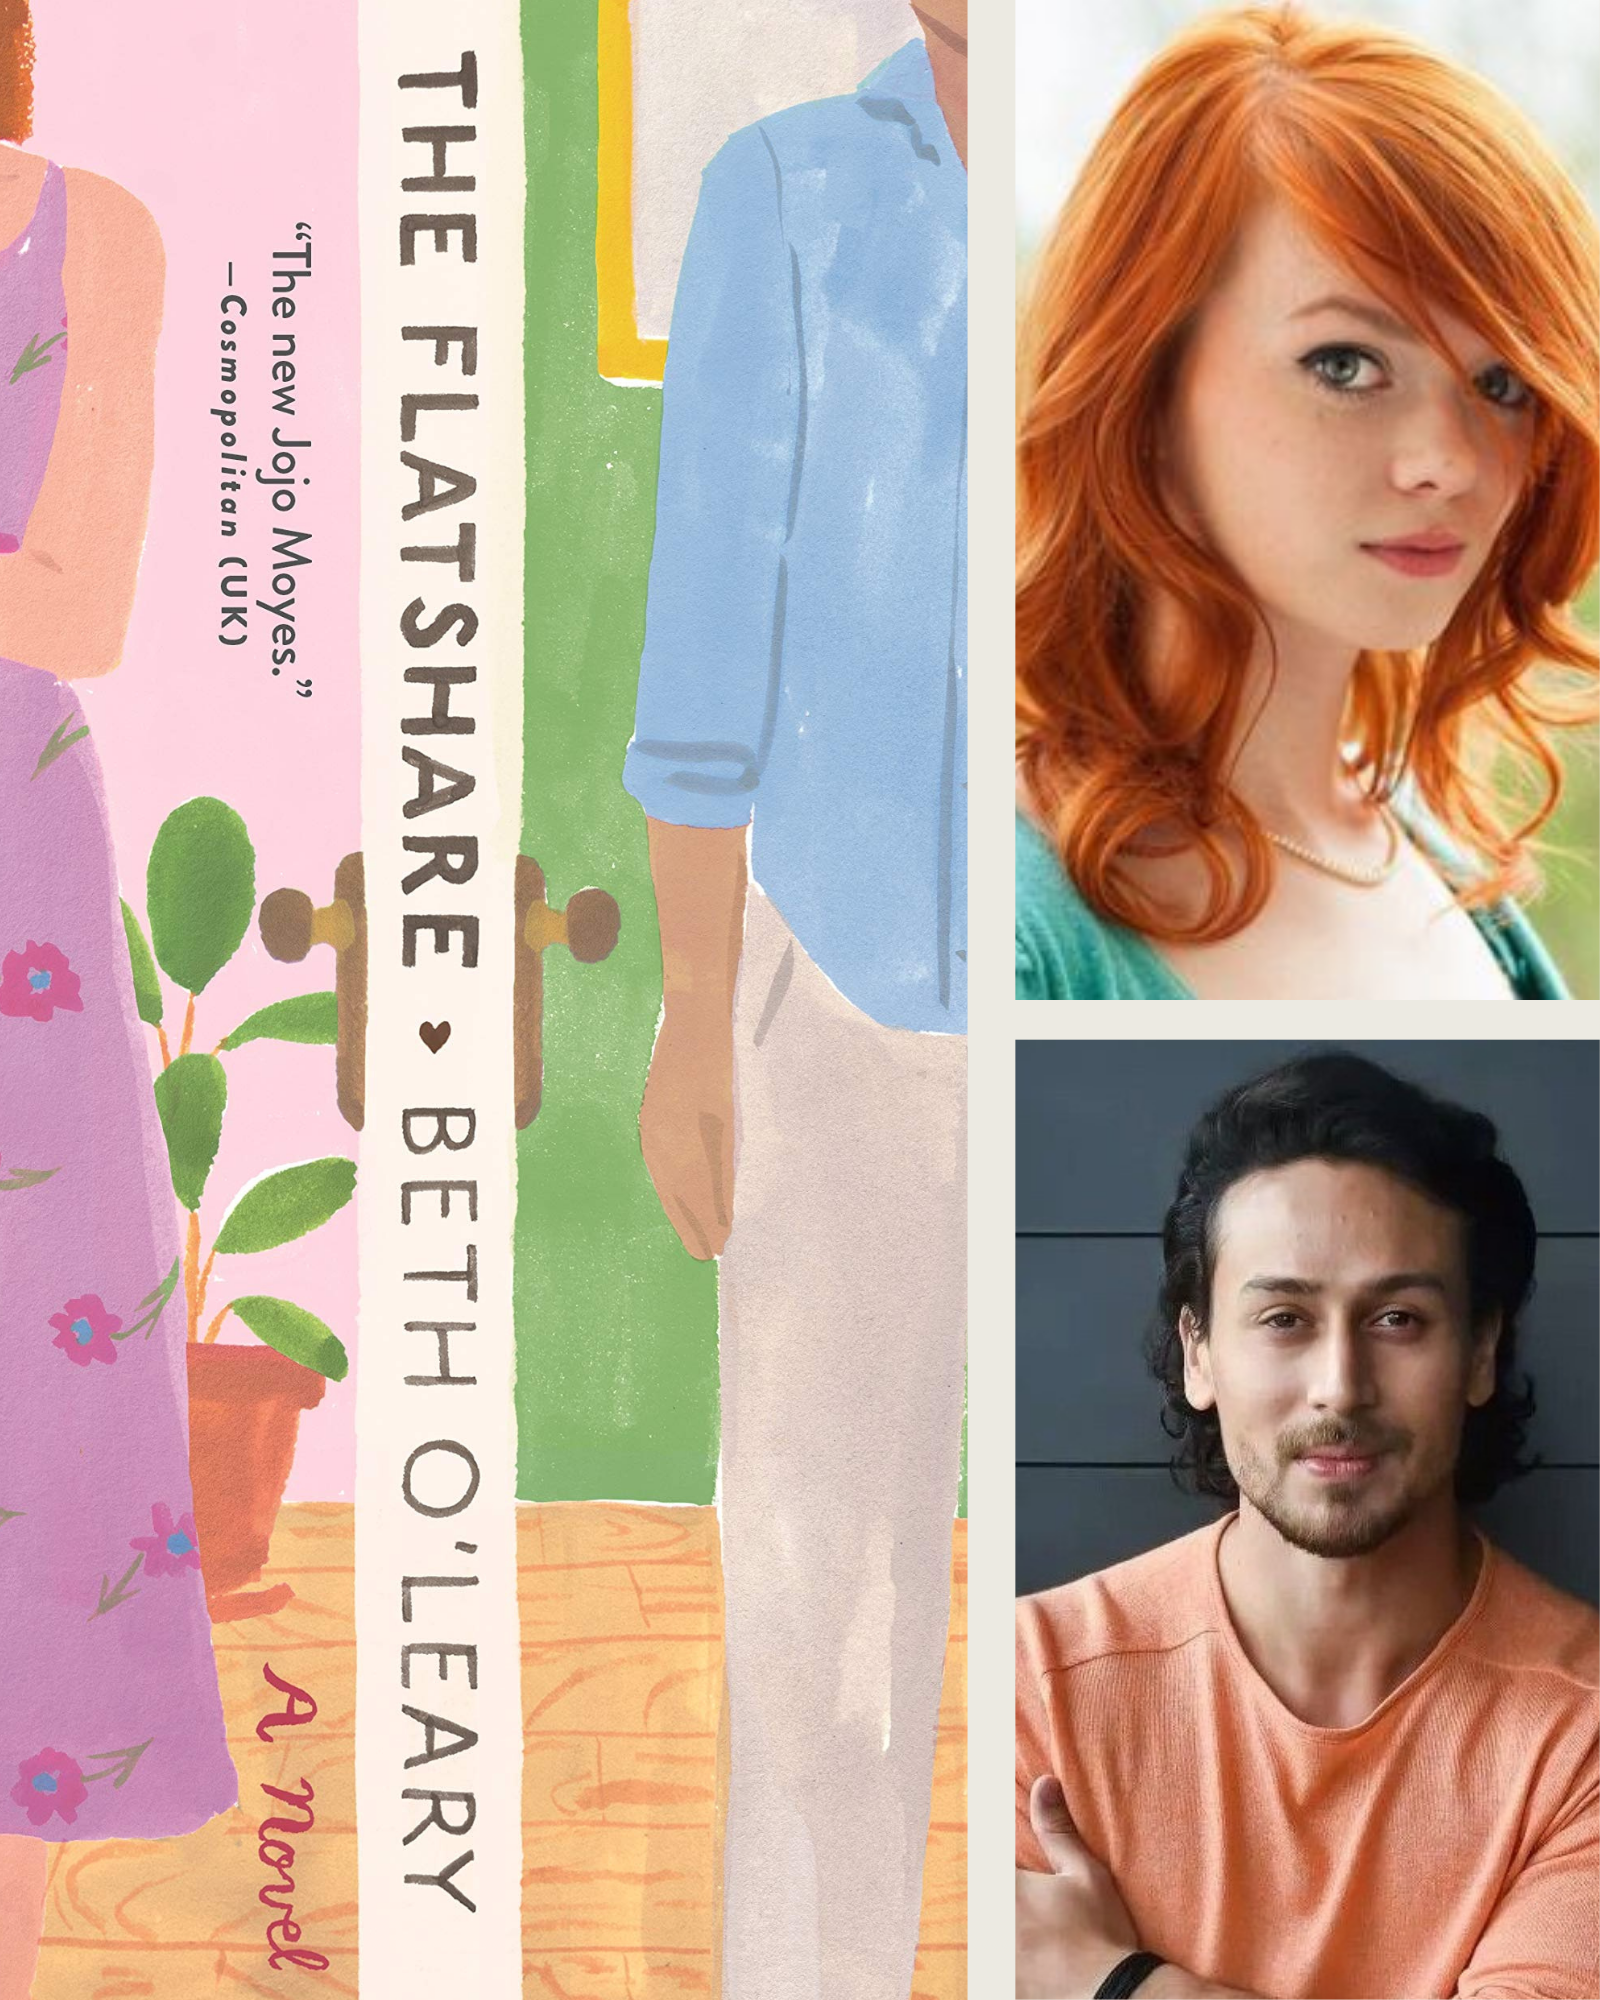 Books imagined: 'The Flatshare' by Beth O'Leary